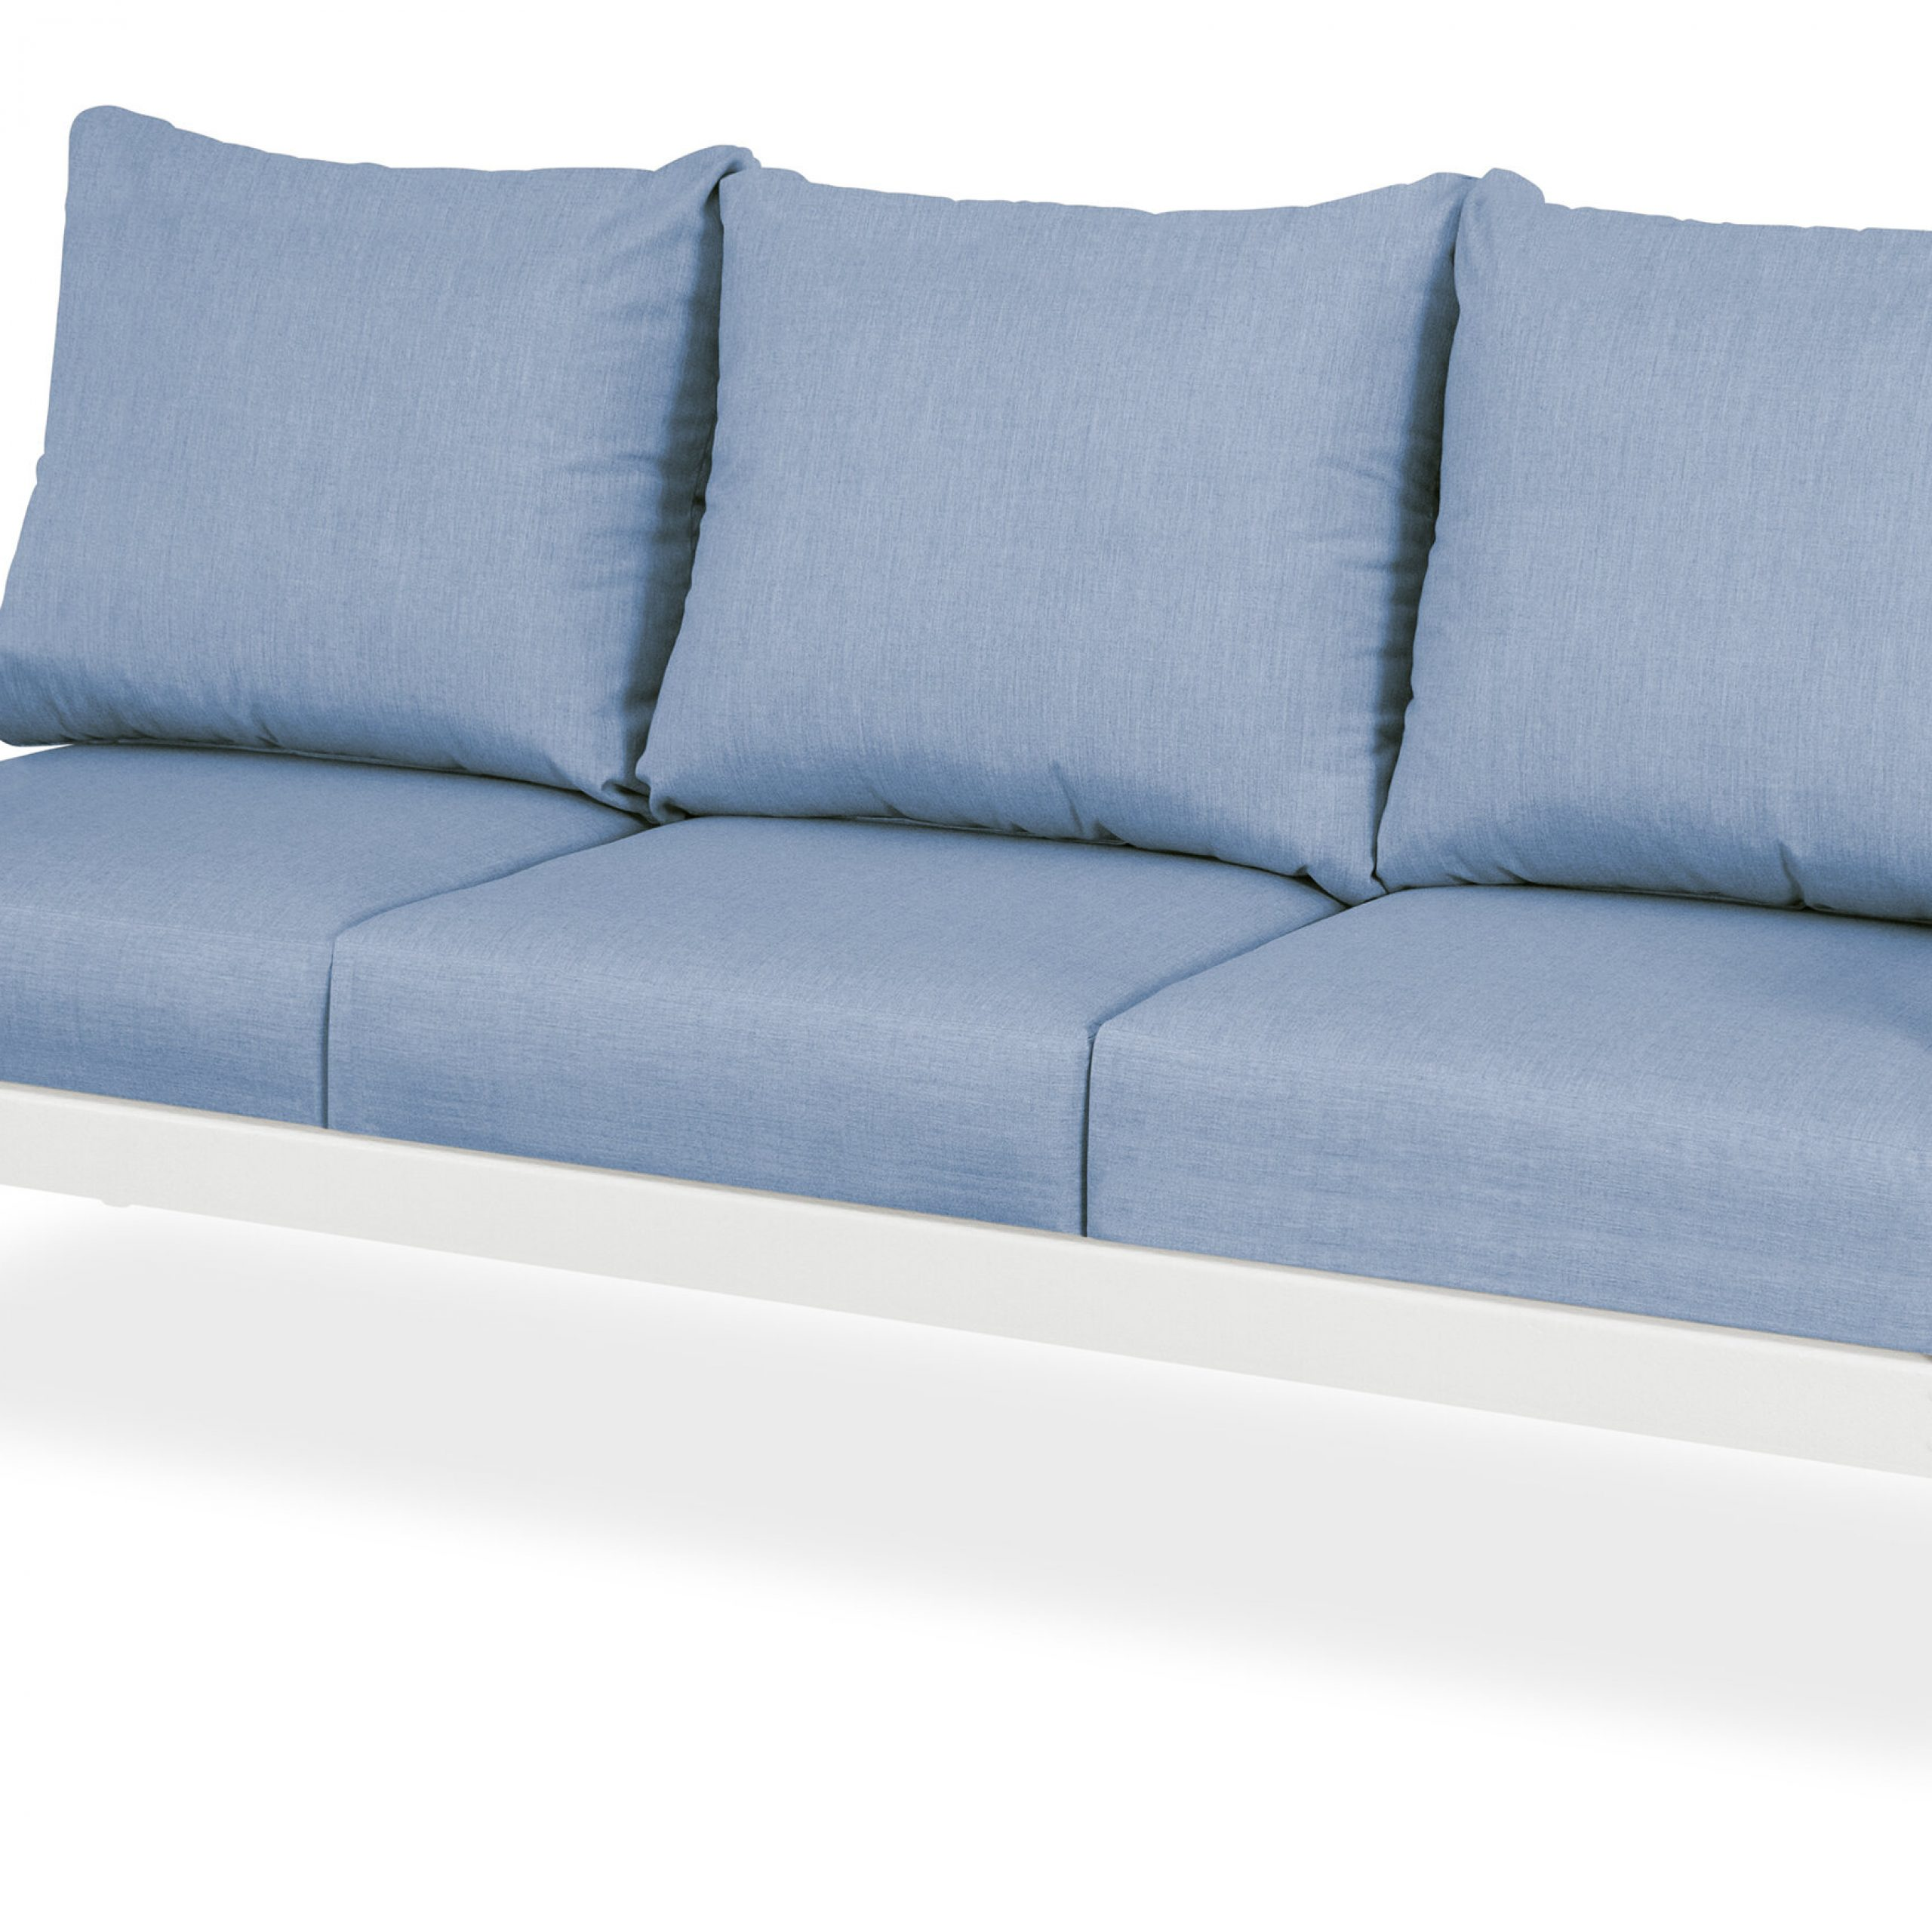 Trex Yacht Club Deep Patio Sofa With Sunbrella Cushions With Outdoor FurnitureYacht Club 2 Person Recycled Plastic Outdoor Swings (View 22 of 25)